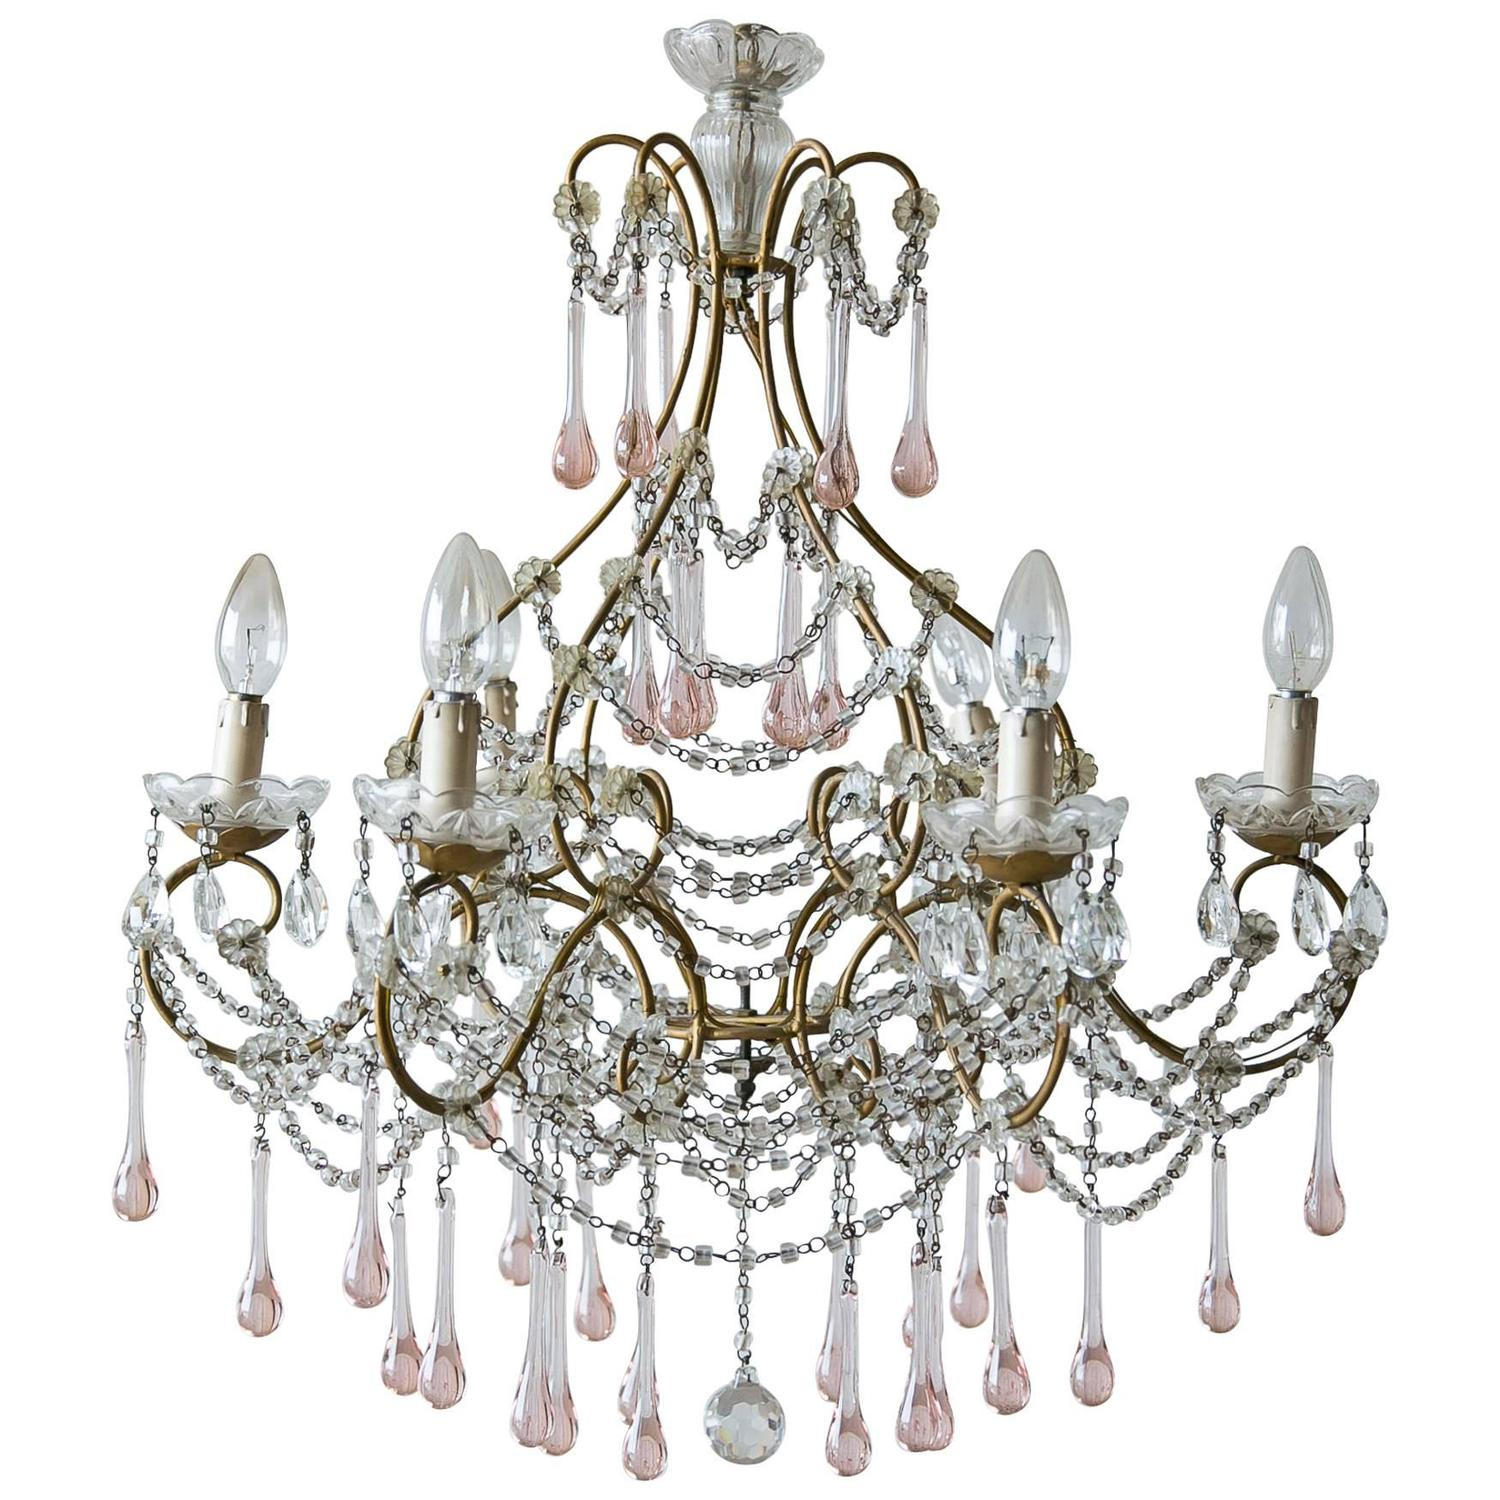 Antique Italian Crystal Chandelier Circa 1890 at 1stdibs